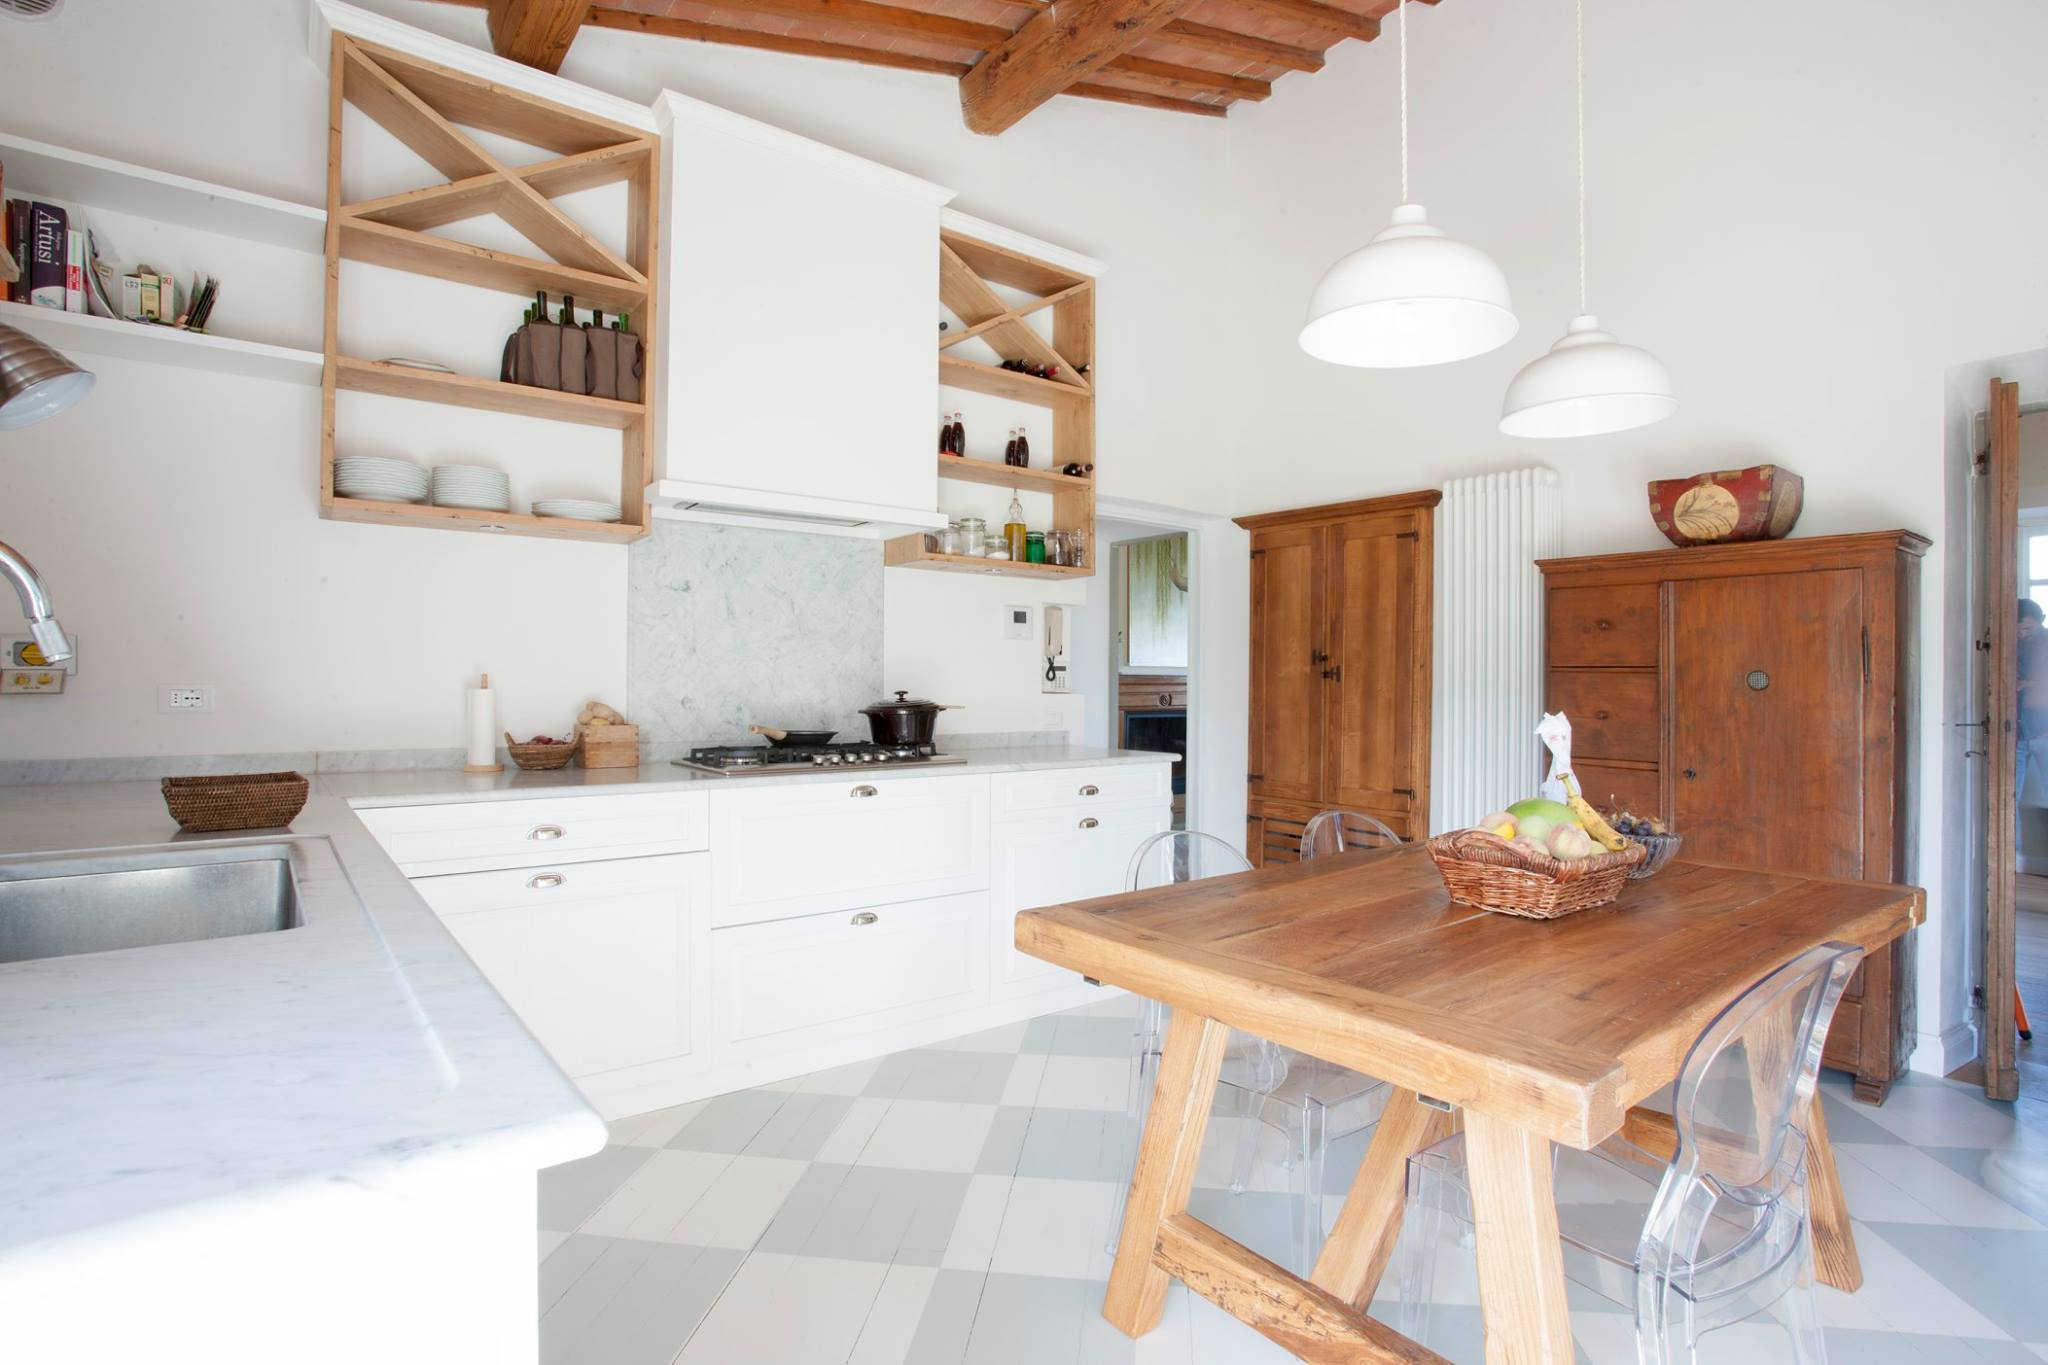 Emejing Cucina In Legno Massello Gallery - Amazing House Design ...